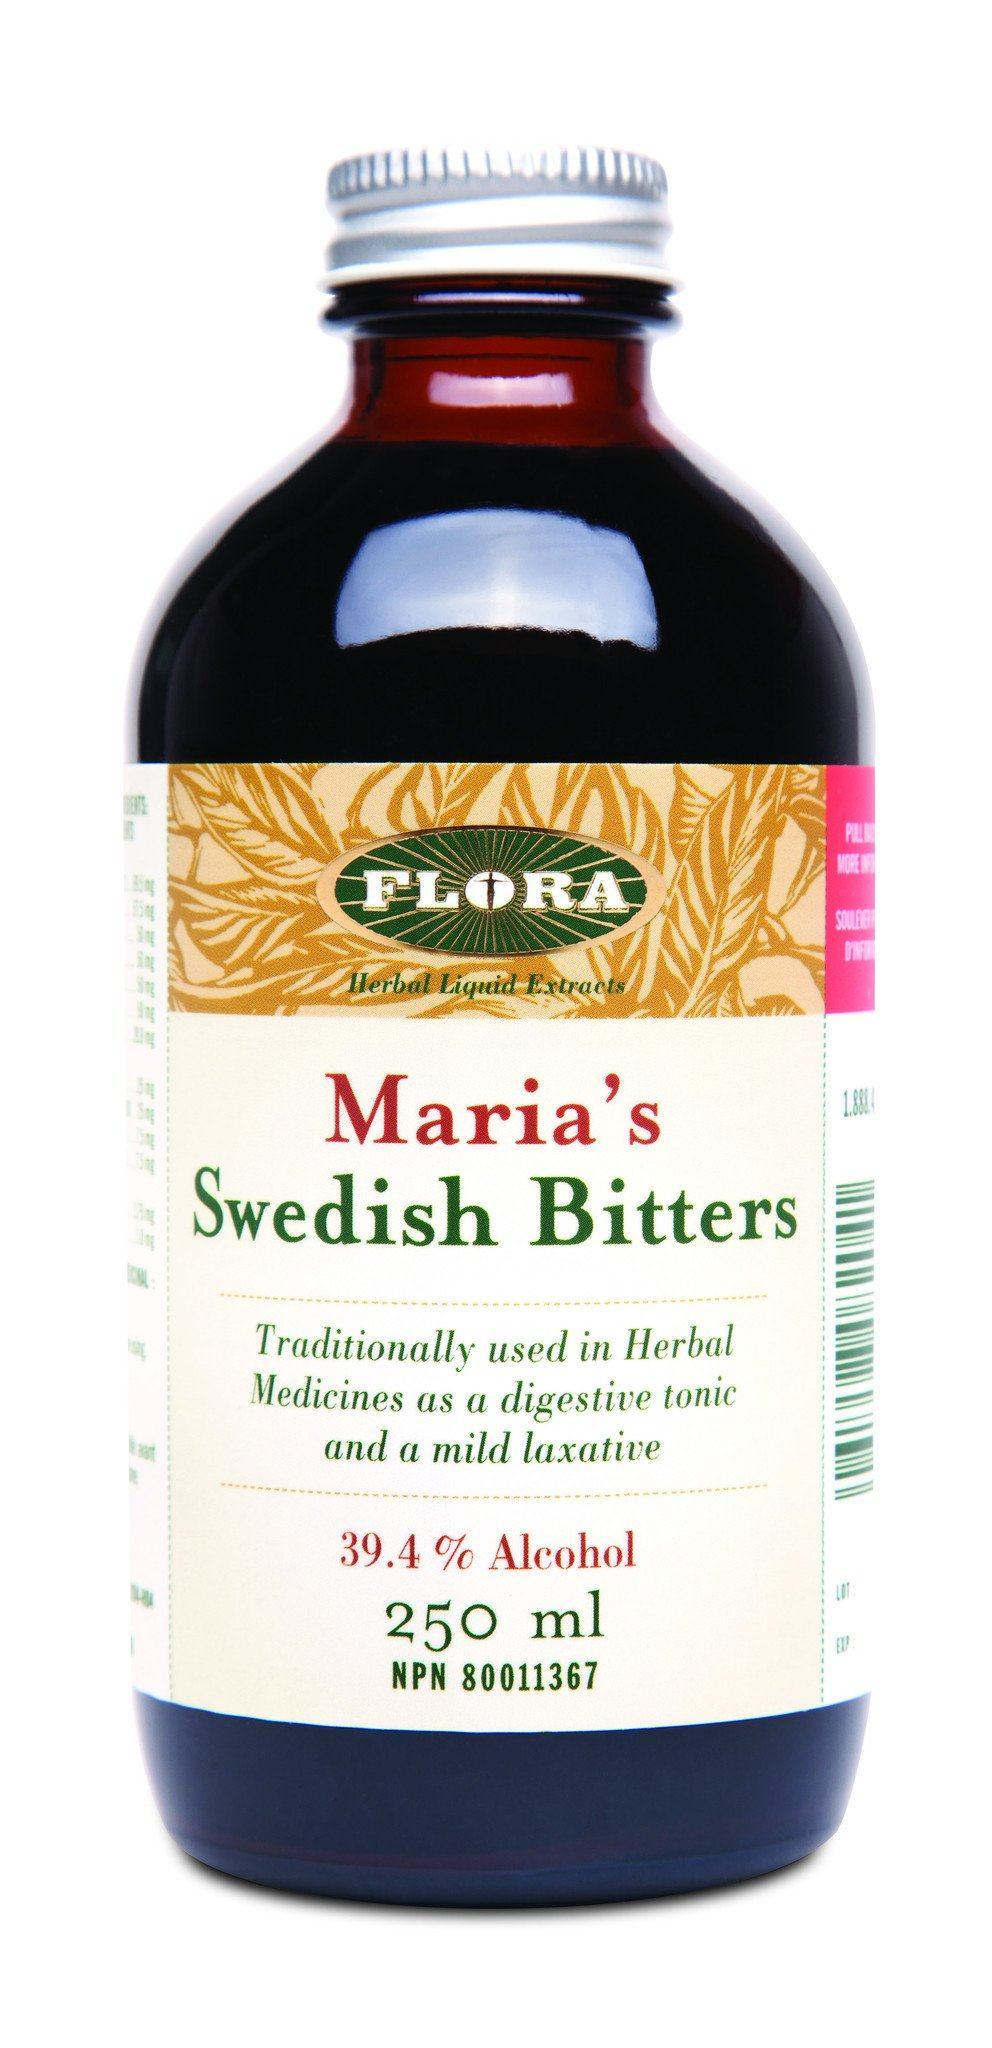 Supplements & Vitamins - Flora - Maria's Swedish Bitters (Alcohol), 250ml